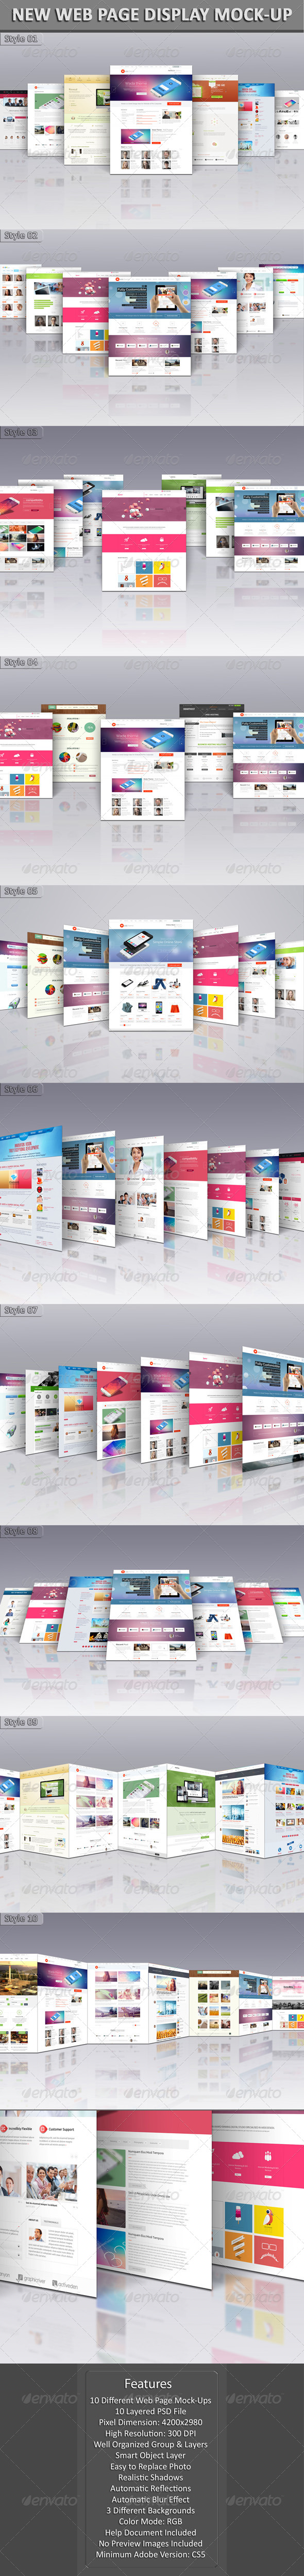 GraphicRiver New Web Page Display Mock-Up 6140496